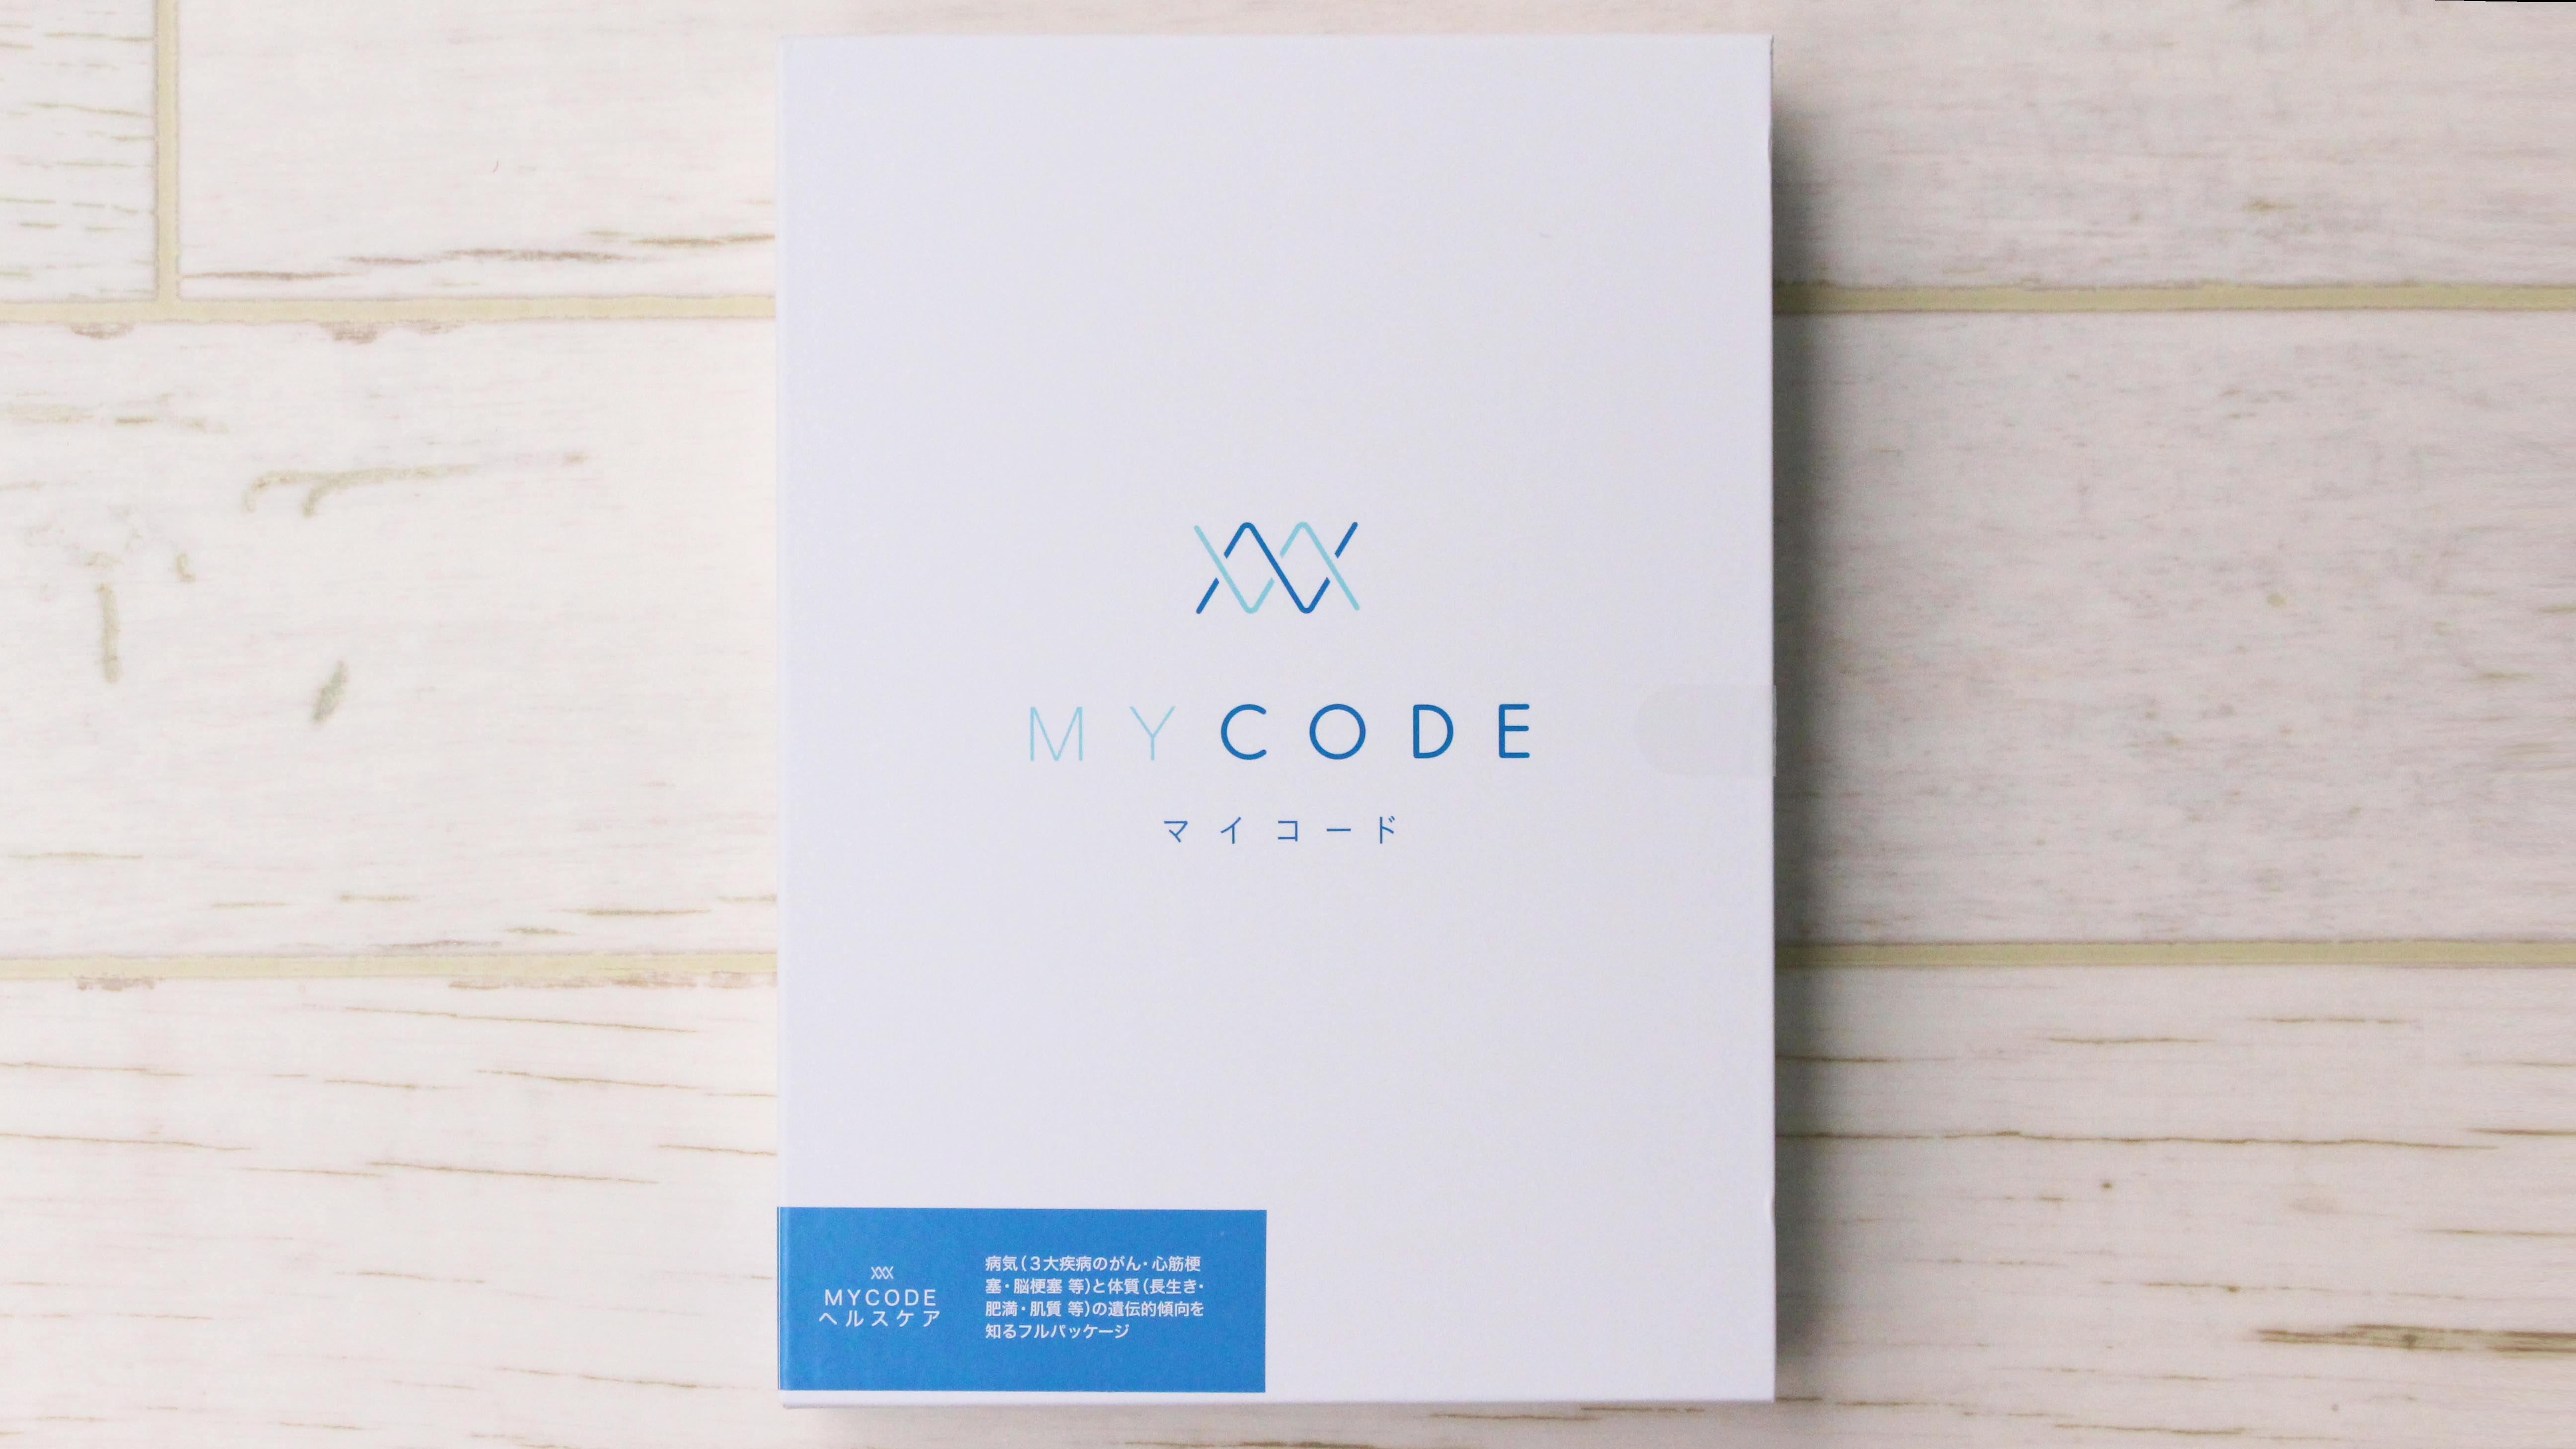 mycode-healthcare2-3